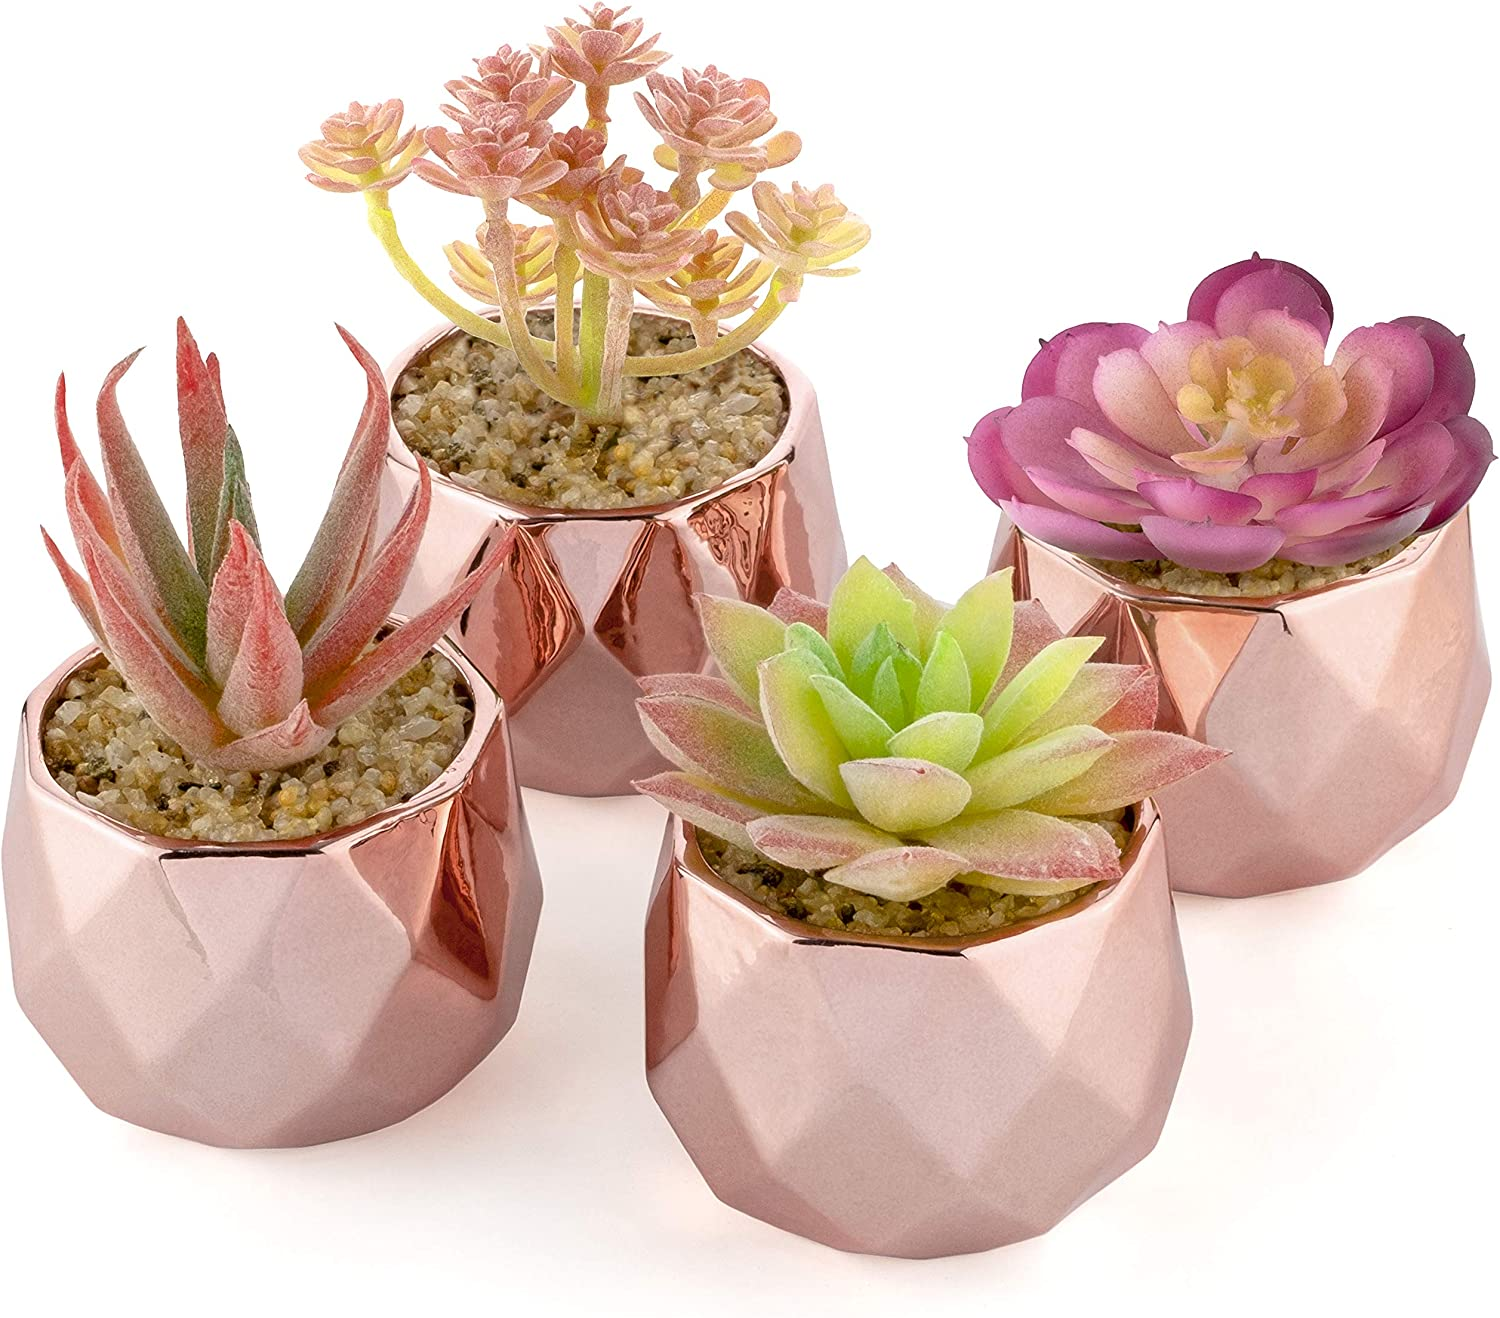 Artificial Succulent Plants - Rose Gold Ceramic Pots for Home Decor - Set of 4 - 2 inch/5cm Planters - Perfect for Indoors and Outdoors - Living Room, Kitchen, Bathroom, Office, Desk, Bedroom (Pink)